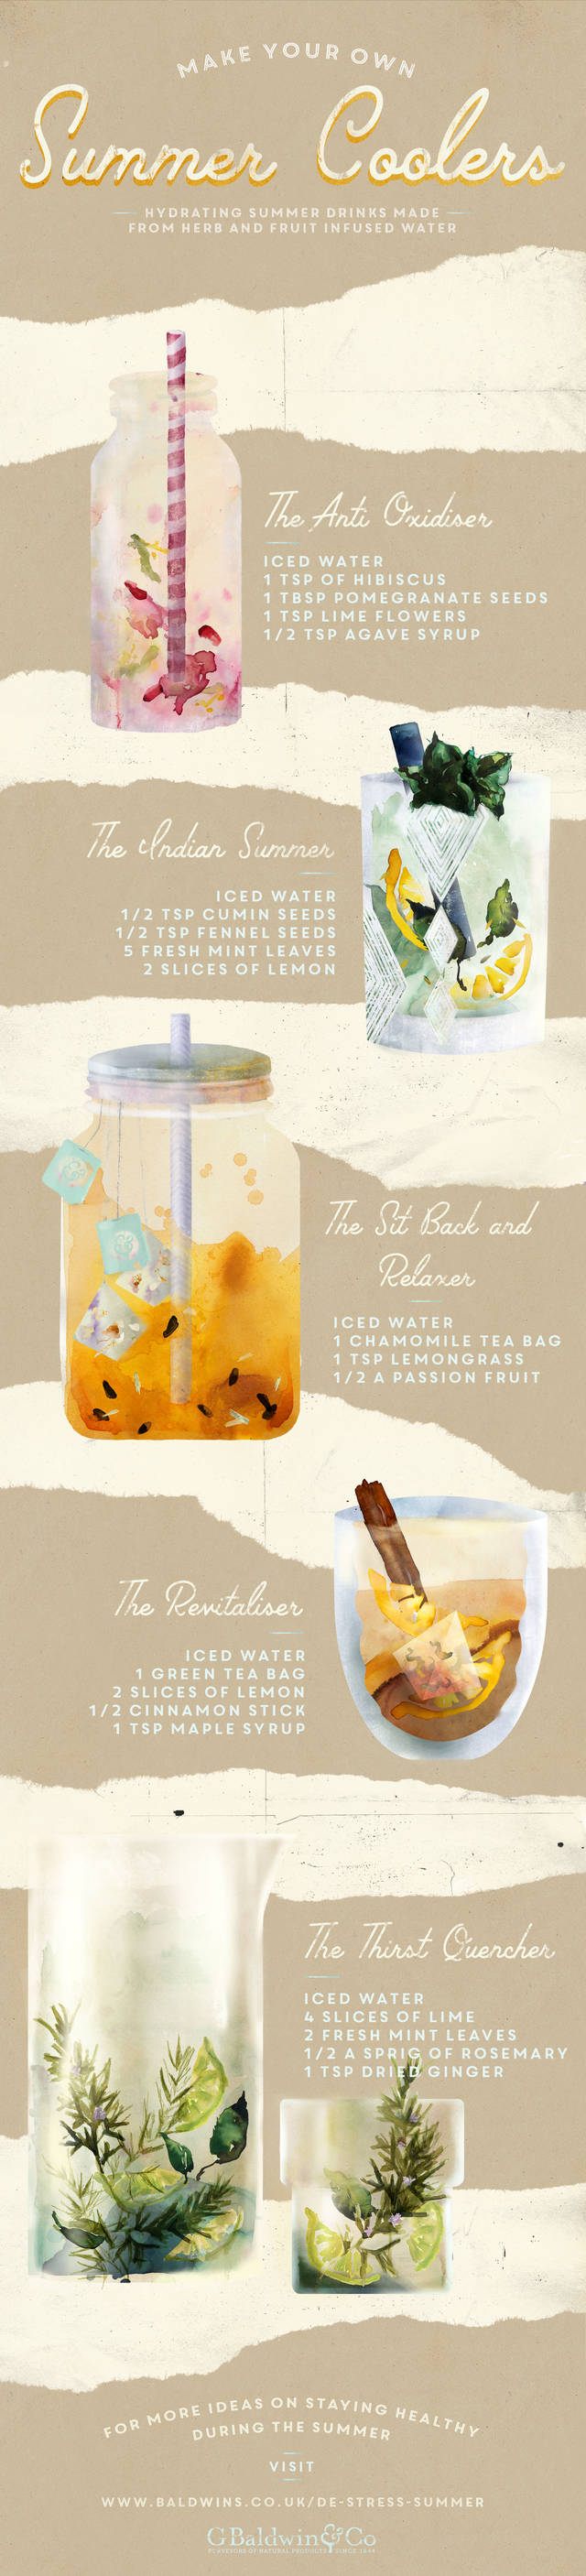 Summer coolers   infused water recipes